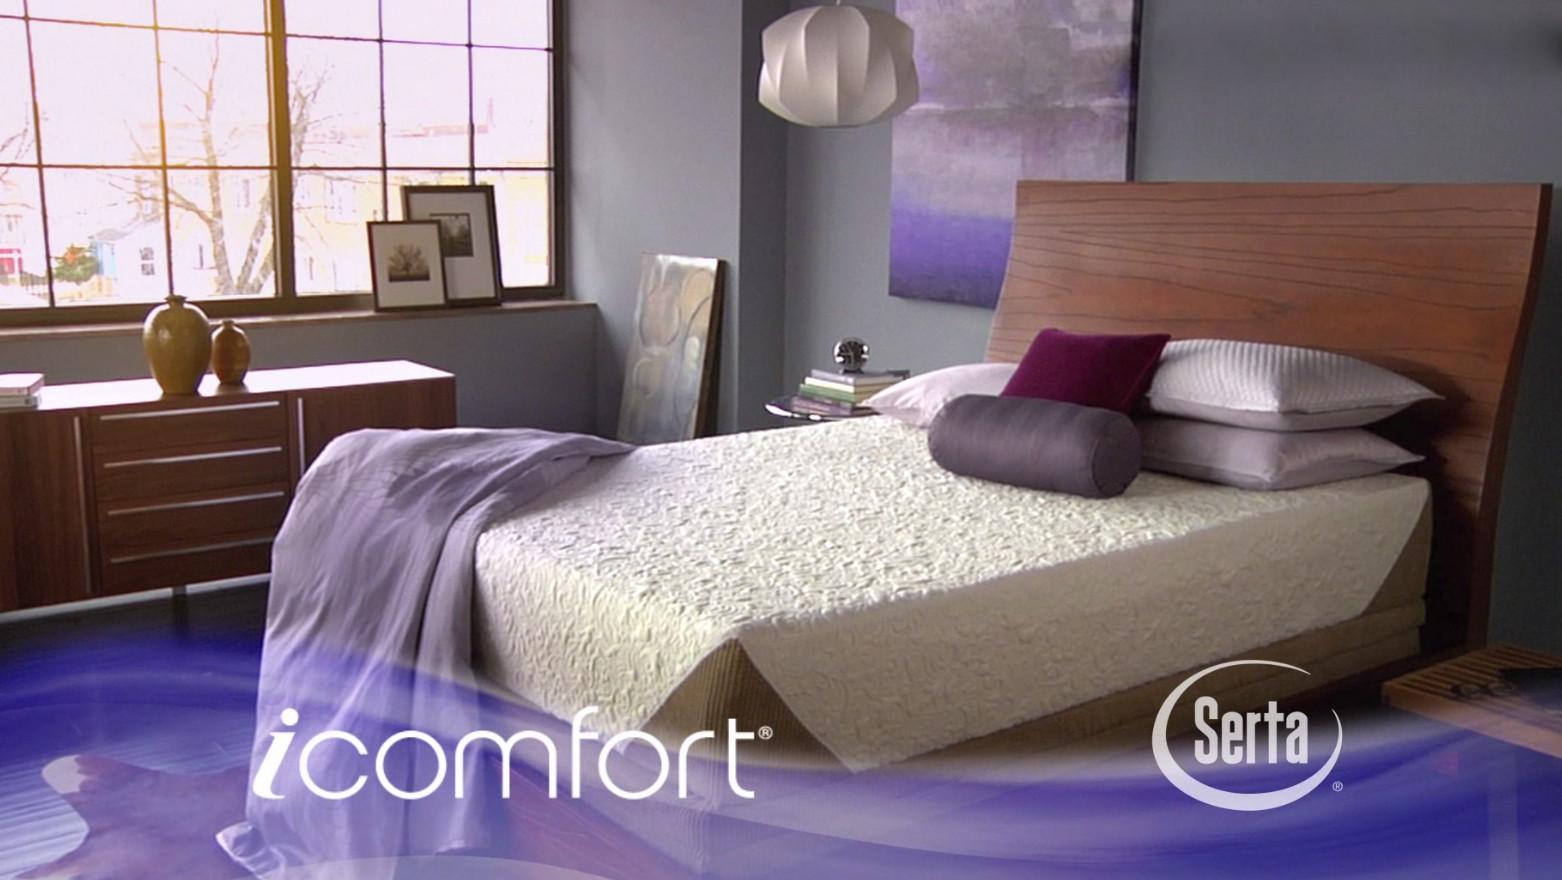 serta icomfort - Serta Icomfort Reviews